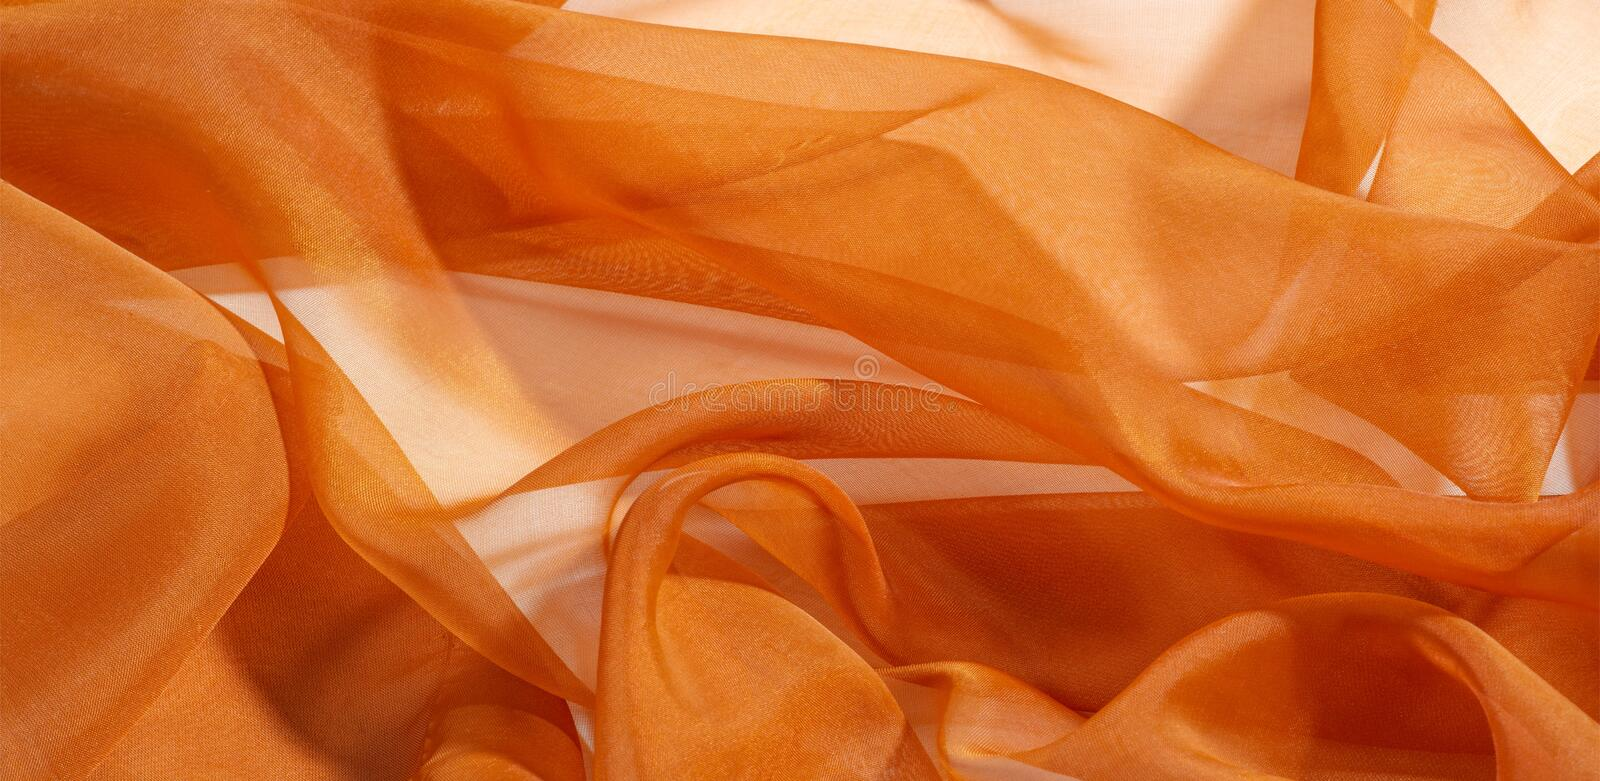 Texture background pattern Brown Silk This exquisite Dupioni silk fabric has a magnificent subtle sheen, full drape and minimal. Maces. It is also perfect for stock photography